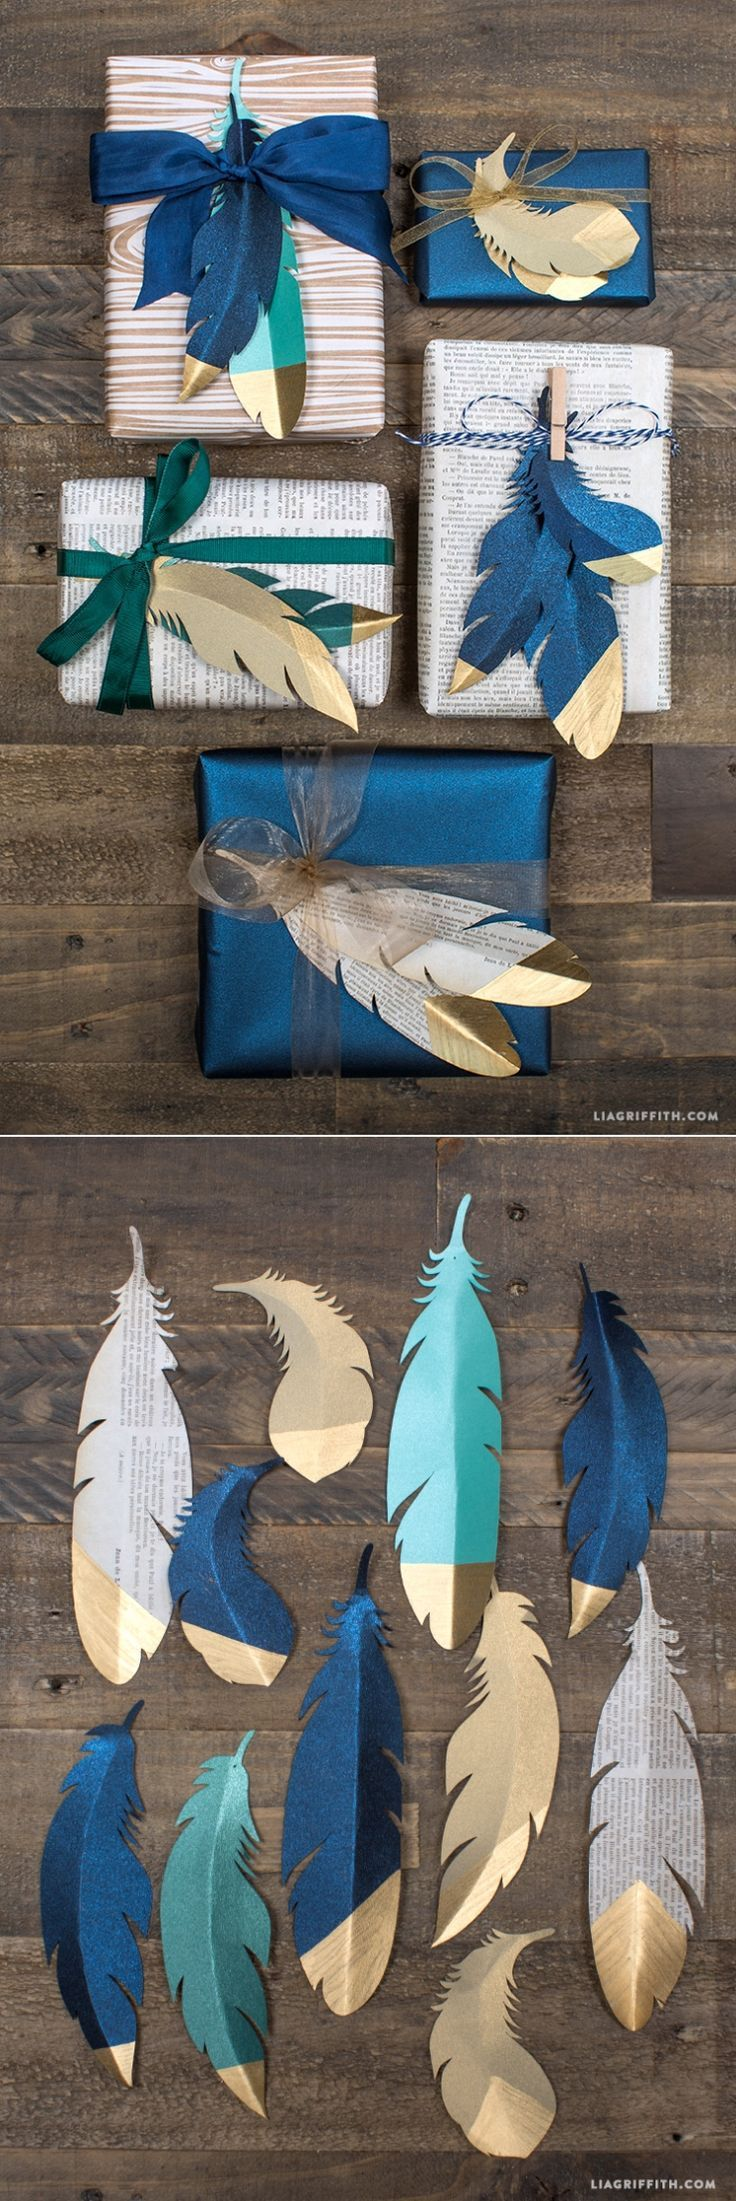 Feathers to decorate your gift wrap